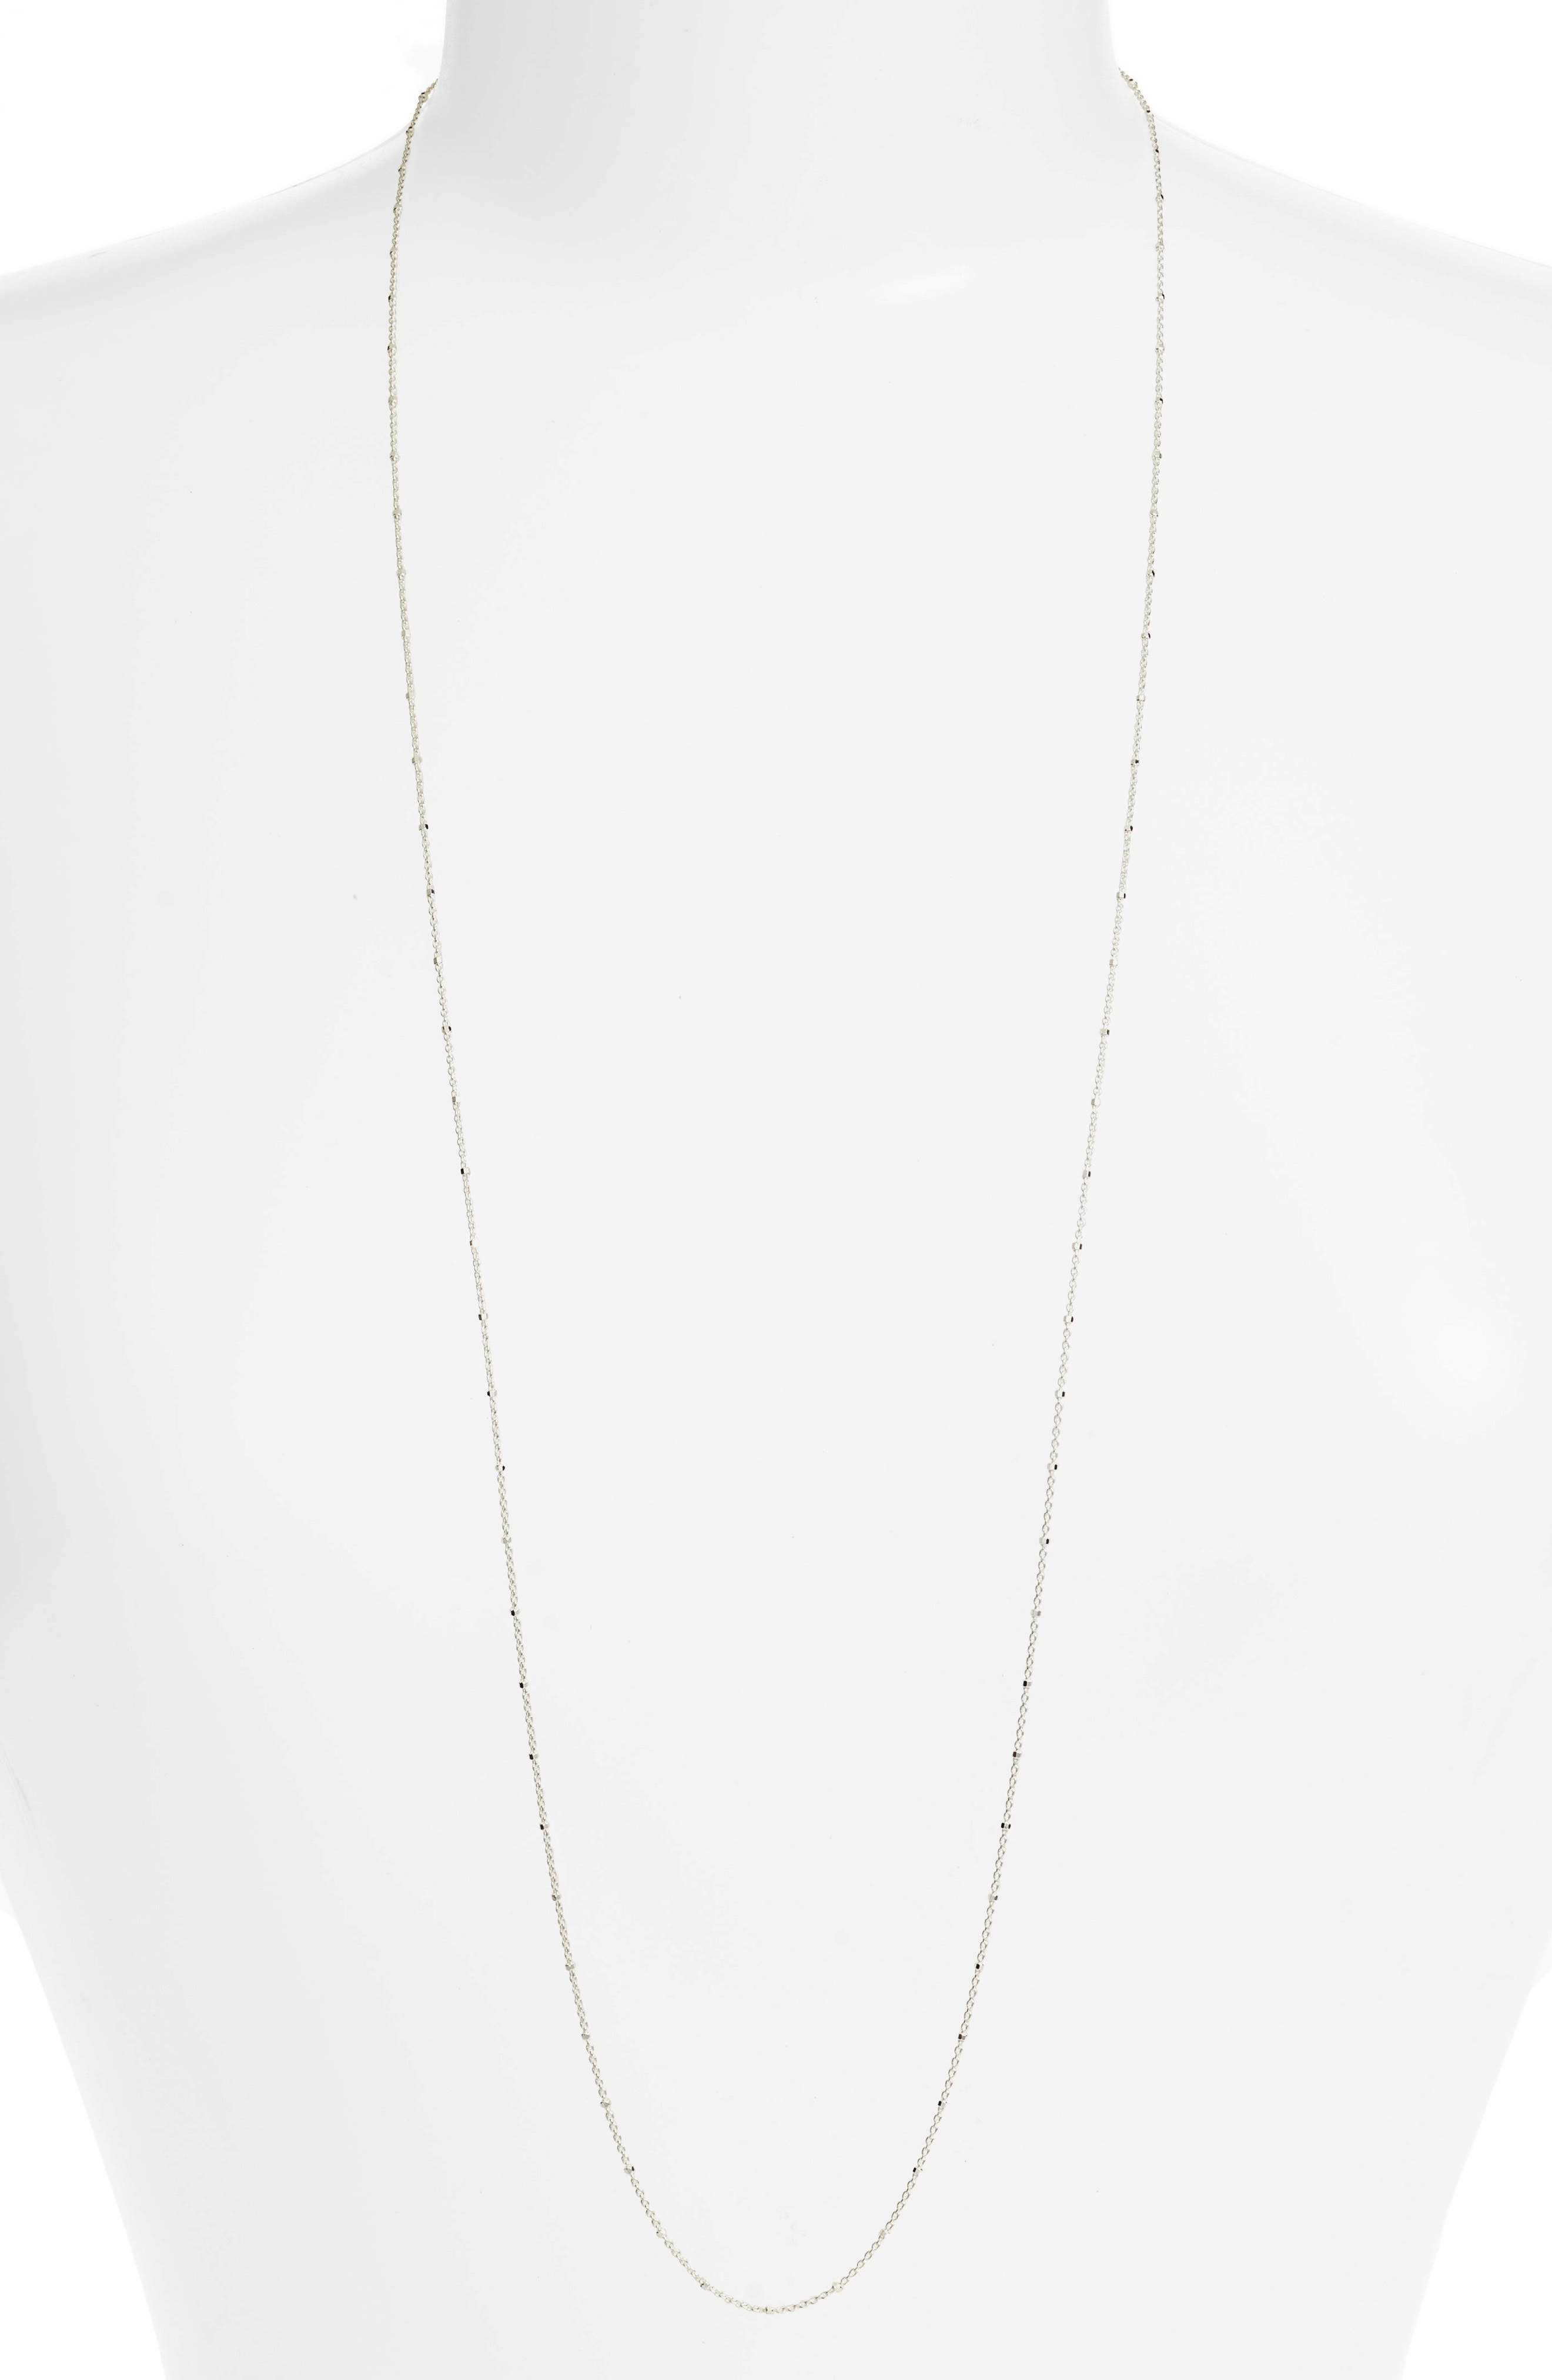 Cylinder Bead Necklace,                         Main,                         color, Silver